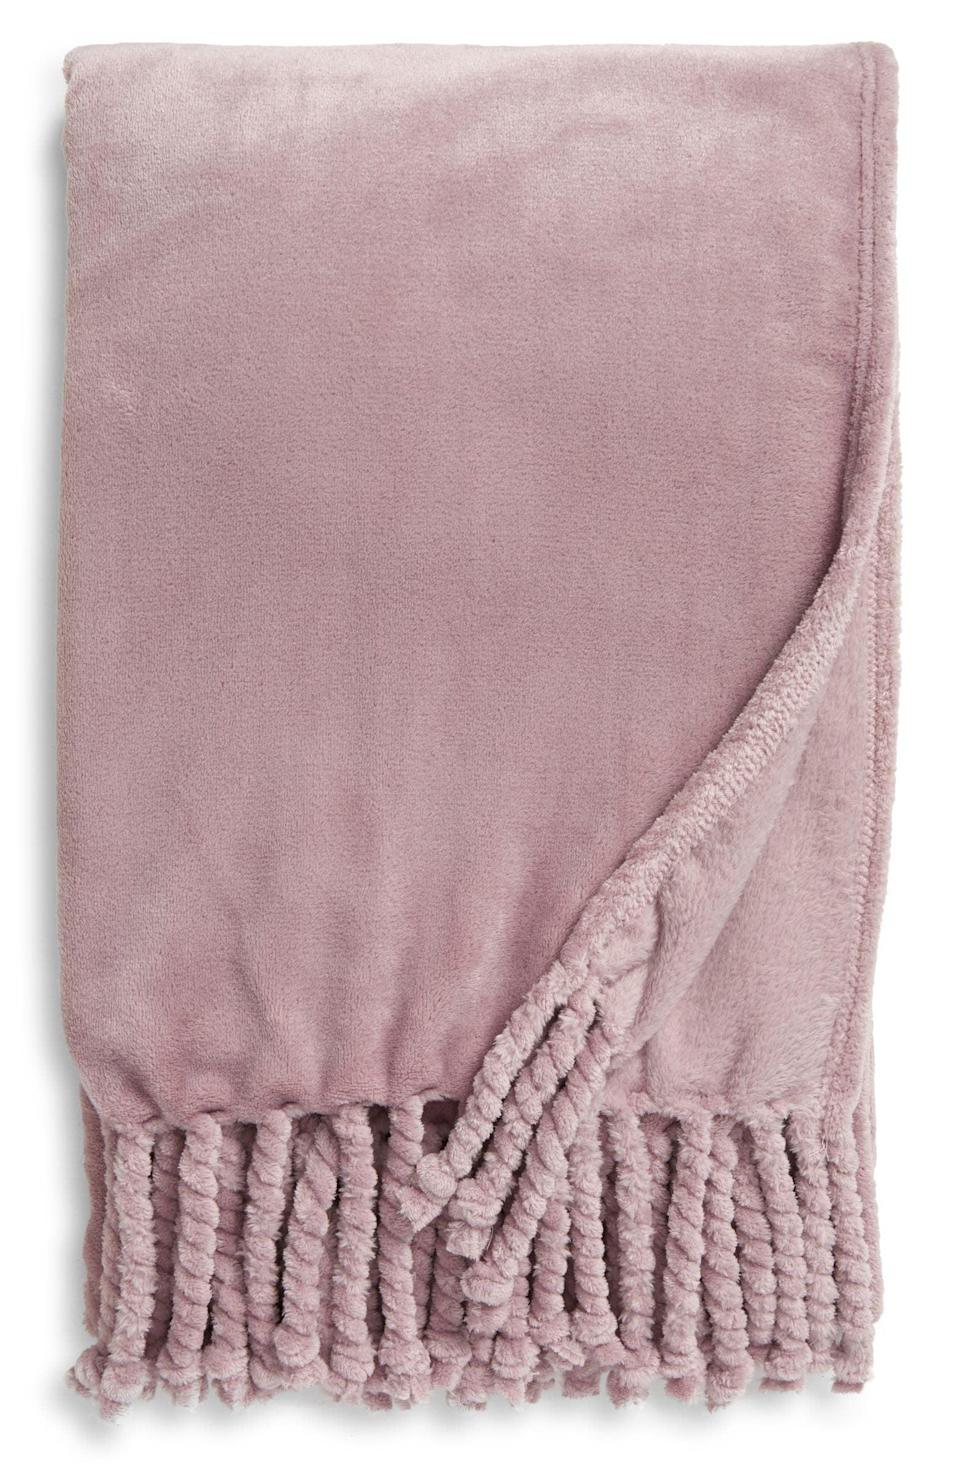 <p>Get them this stunning <span>Nordstrom Bliss Plush Throw</span> ($40) that looks so luxe and comes in a ton of colors. It's something they'll cuddle with all the time. </p>